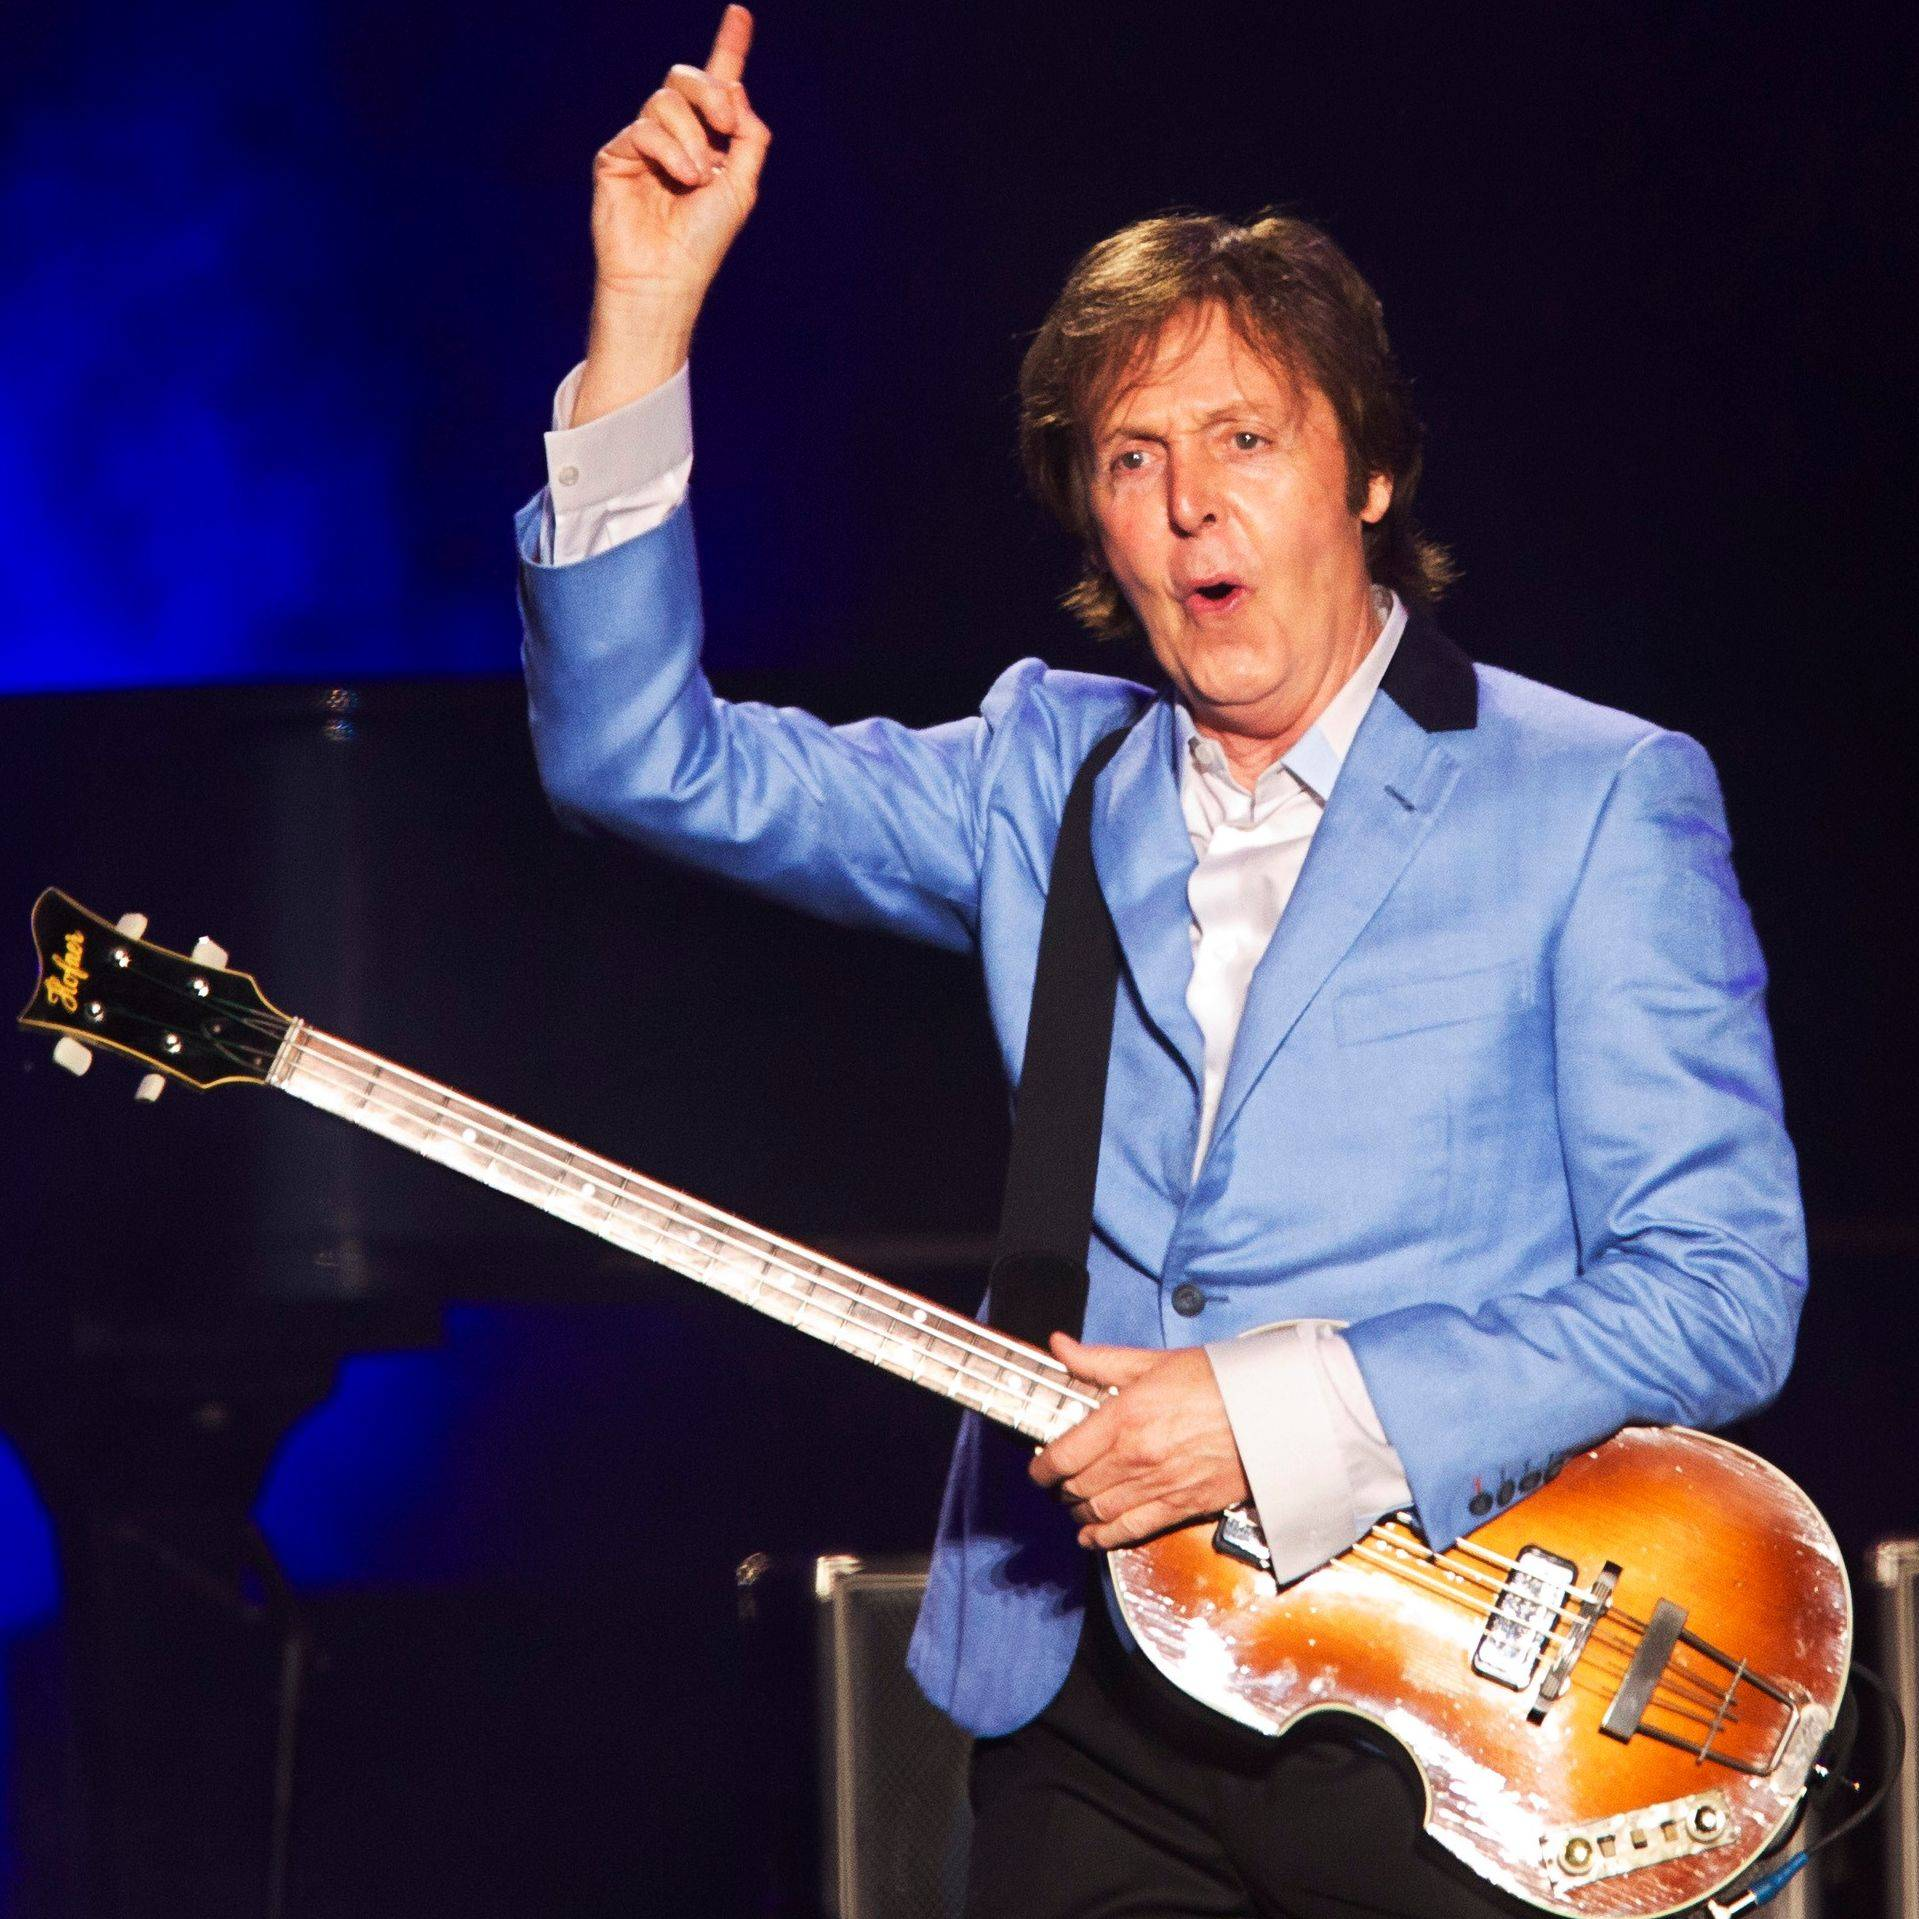 Paul McCartney will play two shows this weekend at Wrigley Field.